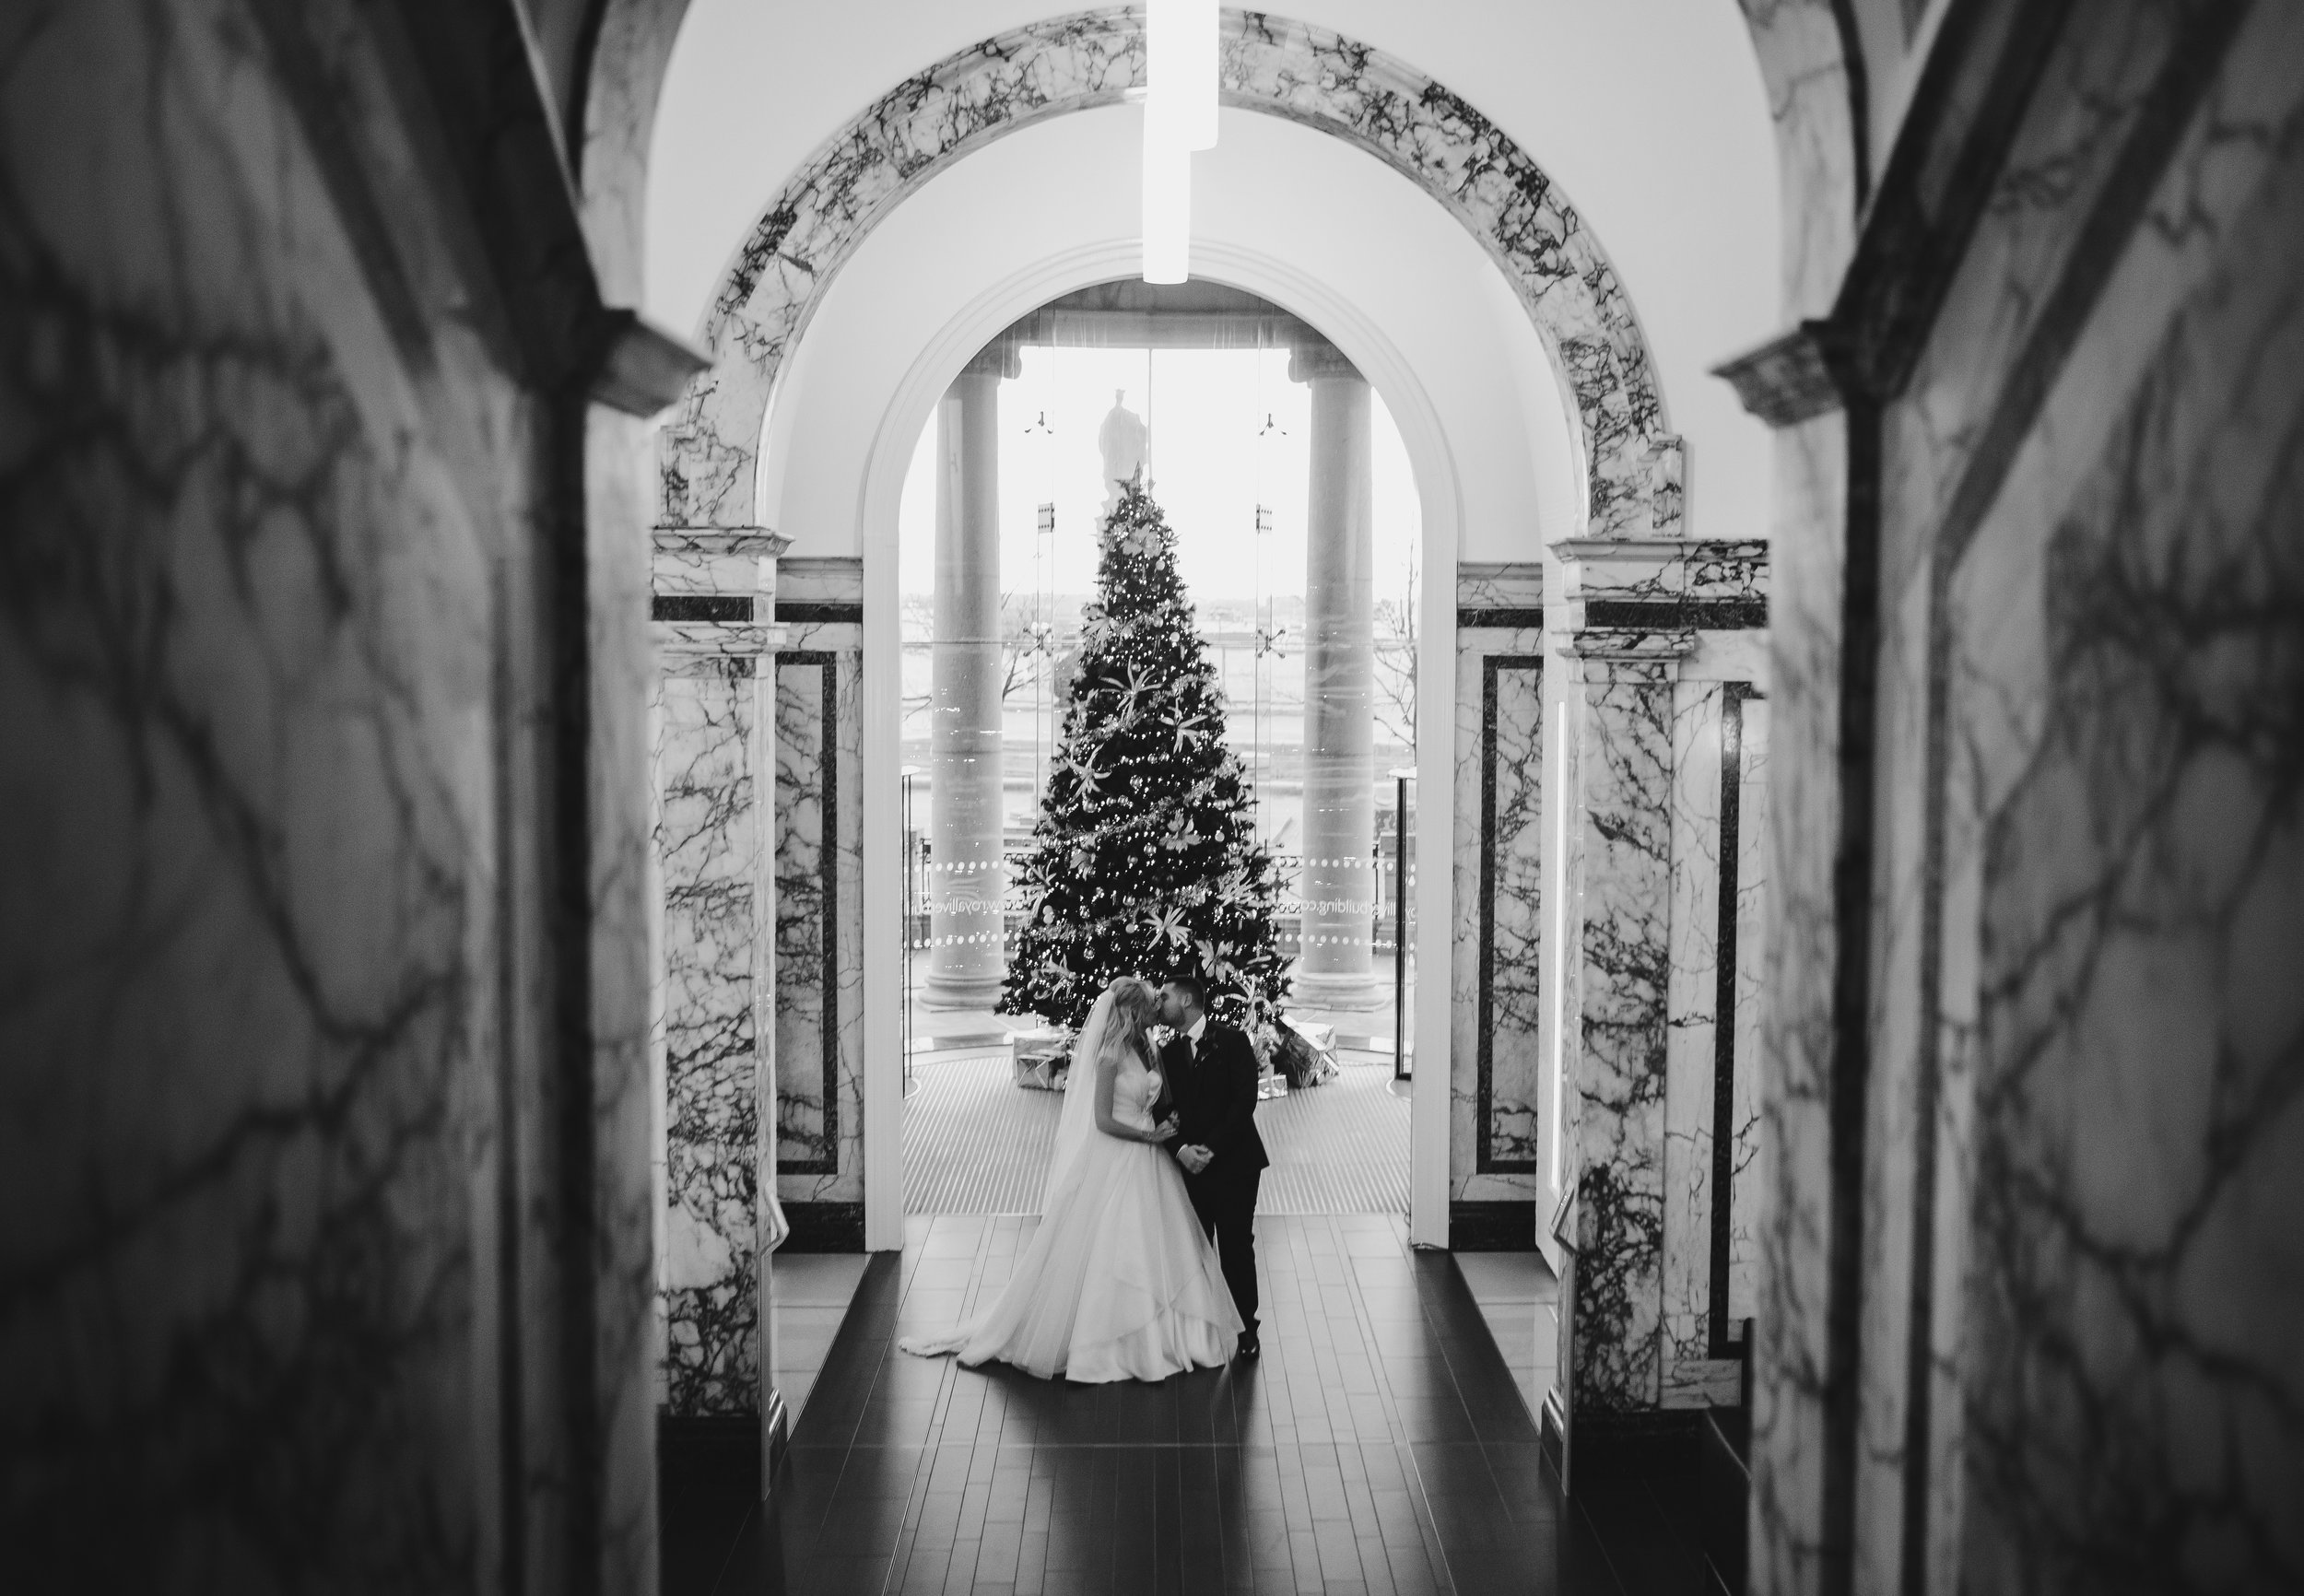 Liver Building wedding pictures - inside the foyer